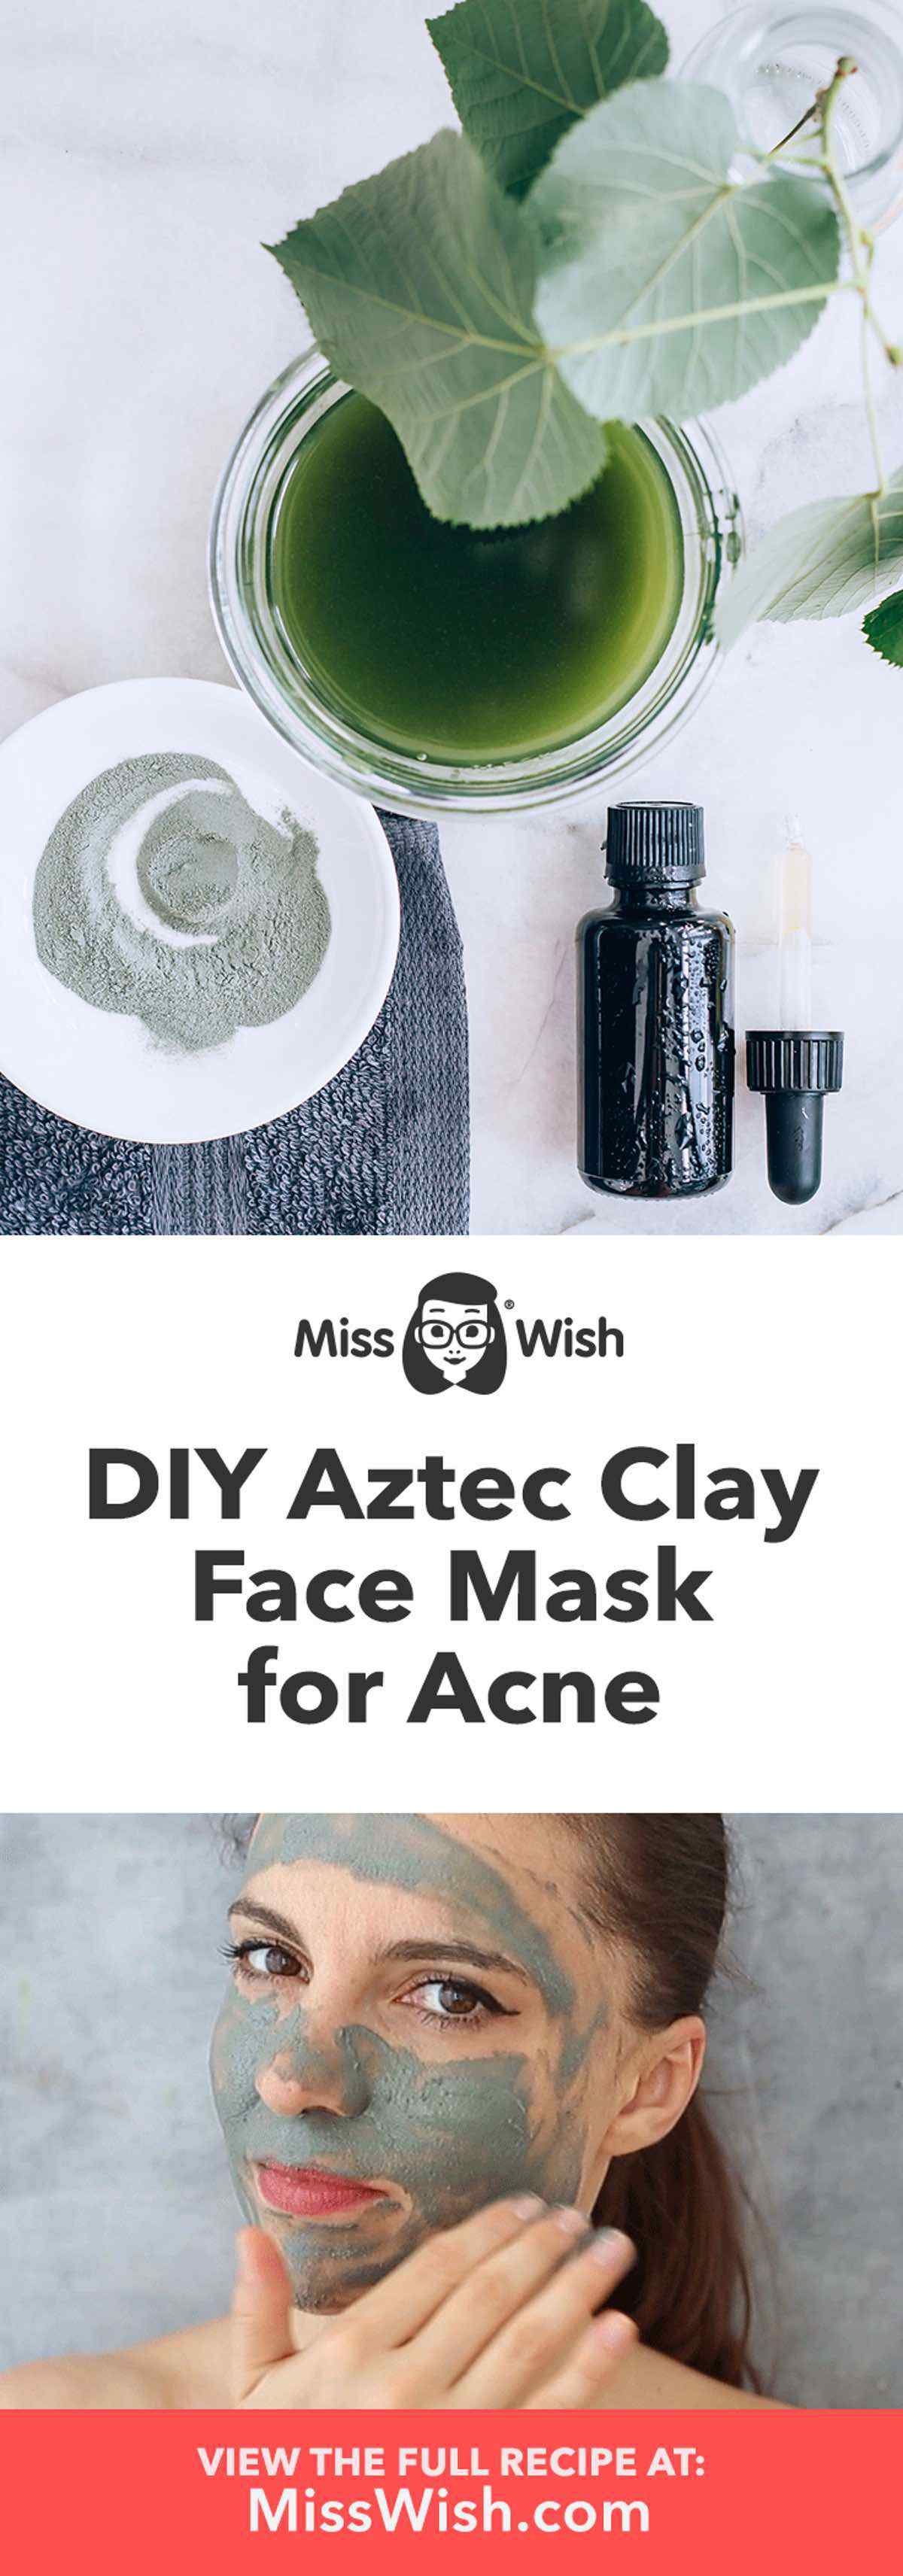 Homemade Aztec Clay Face Mask for Acne